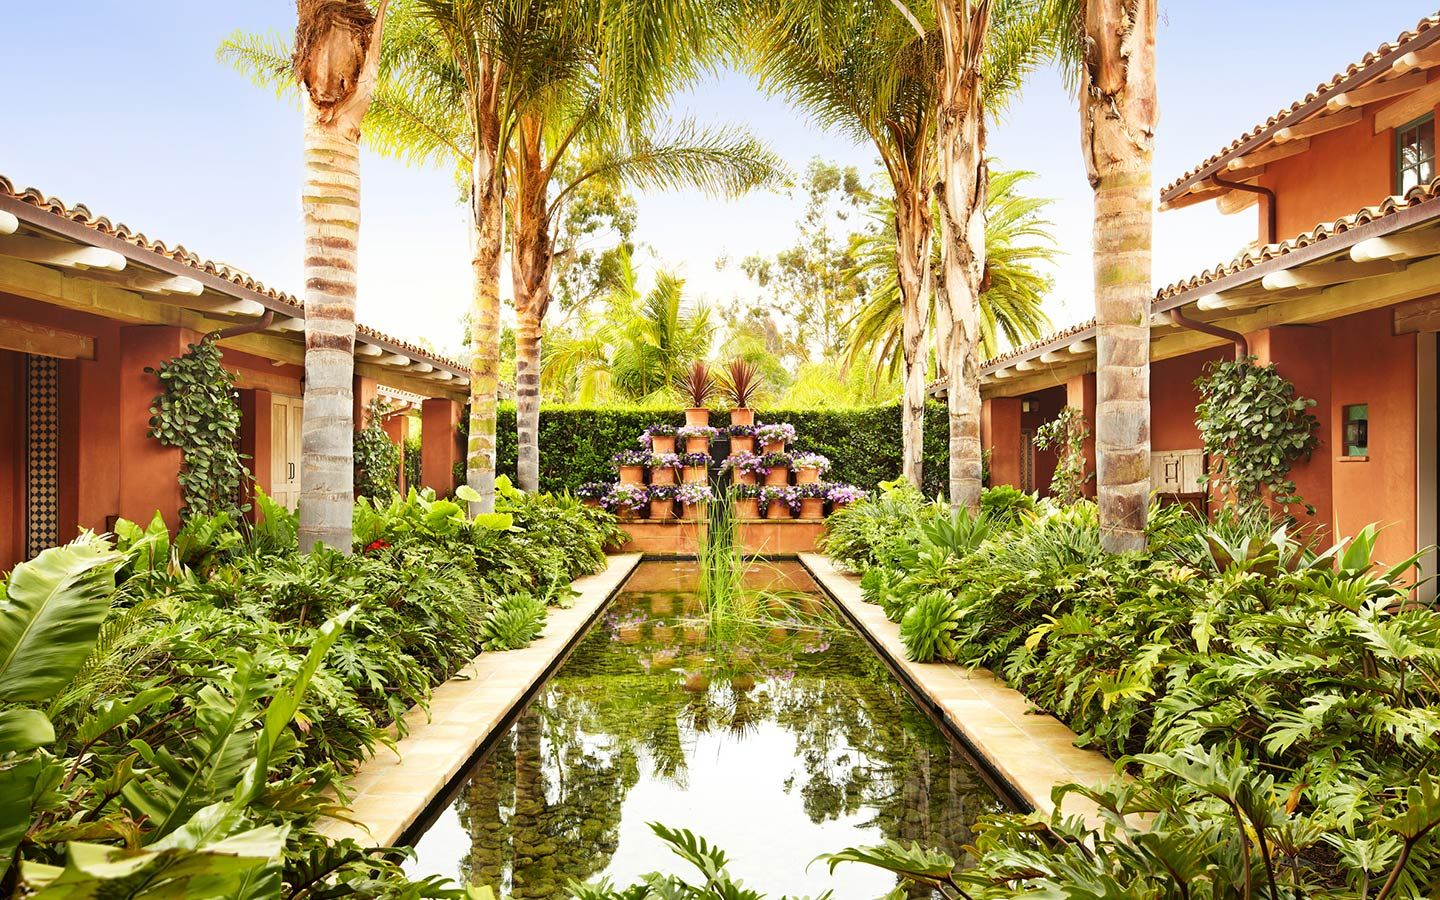 rancho santa fe hotels suites villas rancho valencia san diego luxury hotels - San Diego Luxury Hotels And Resorts